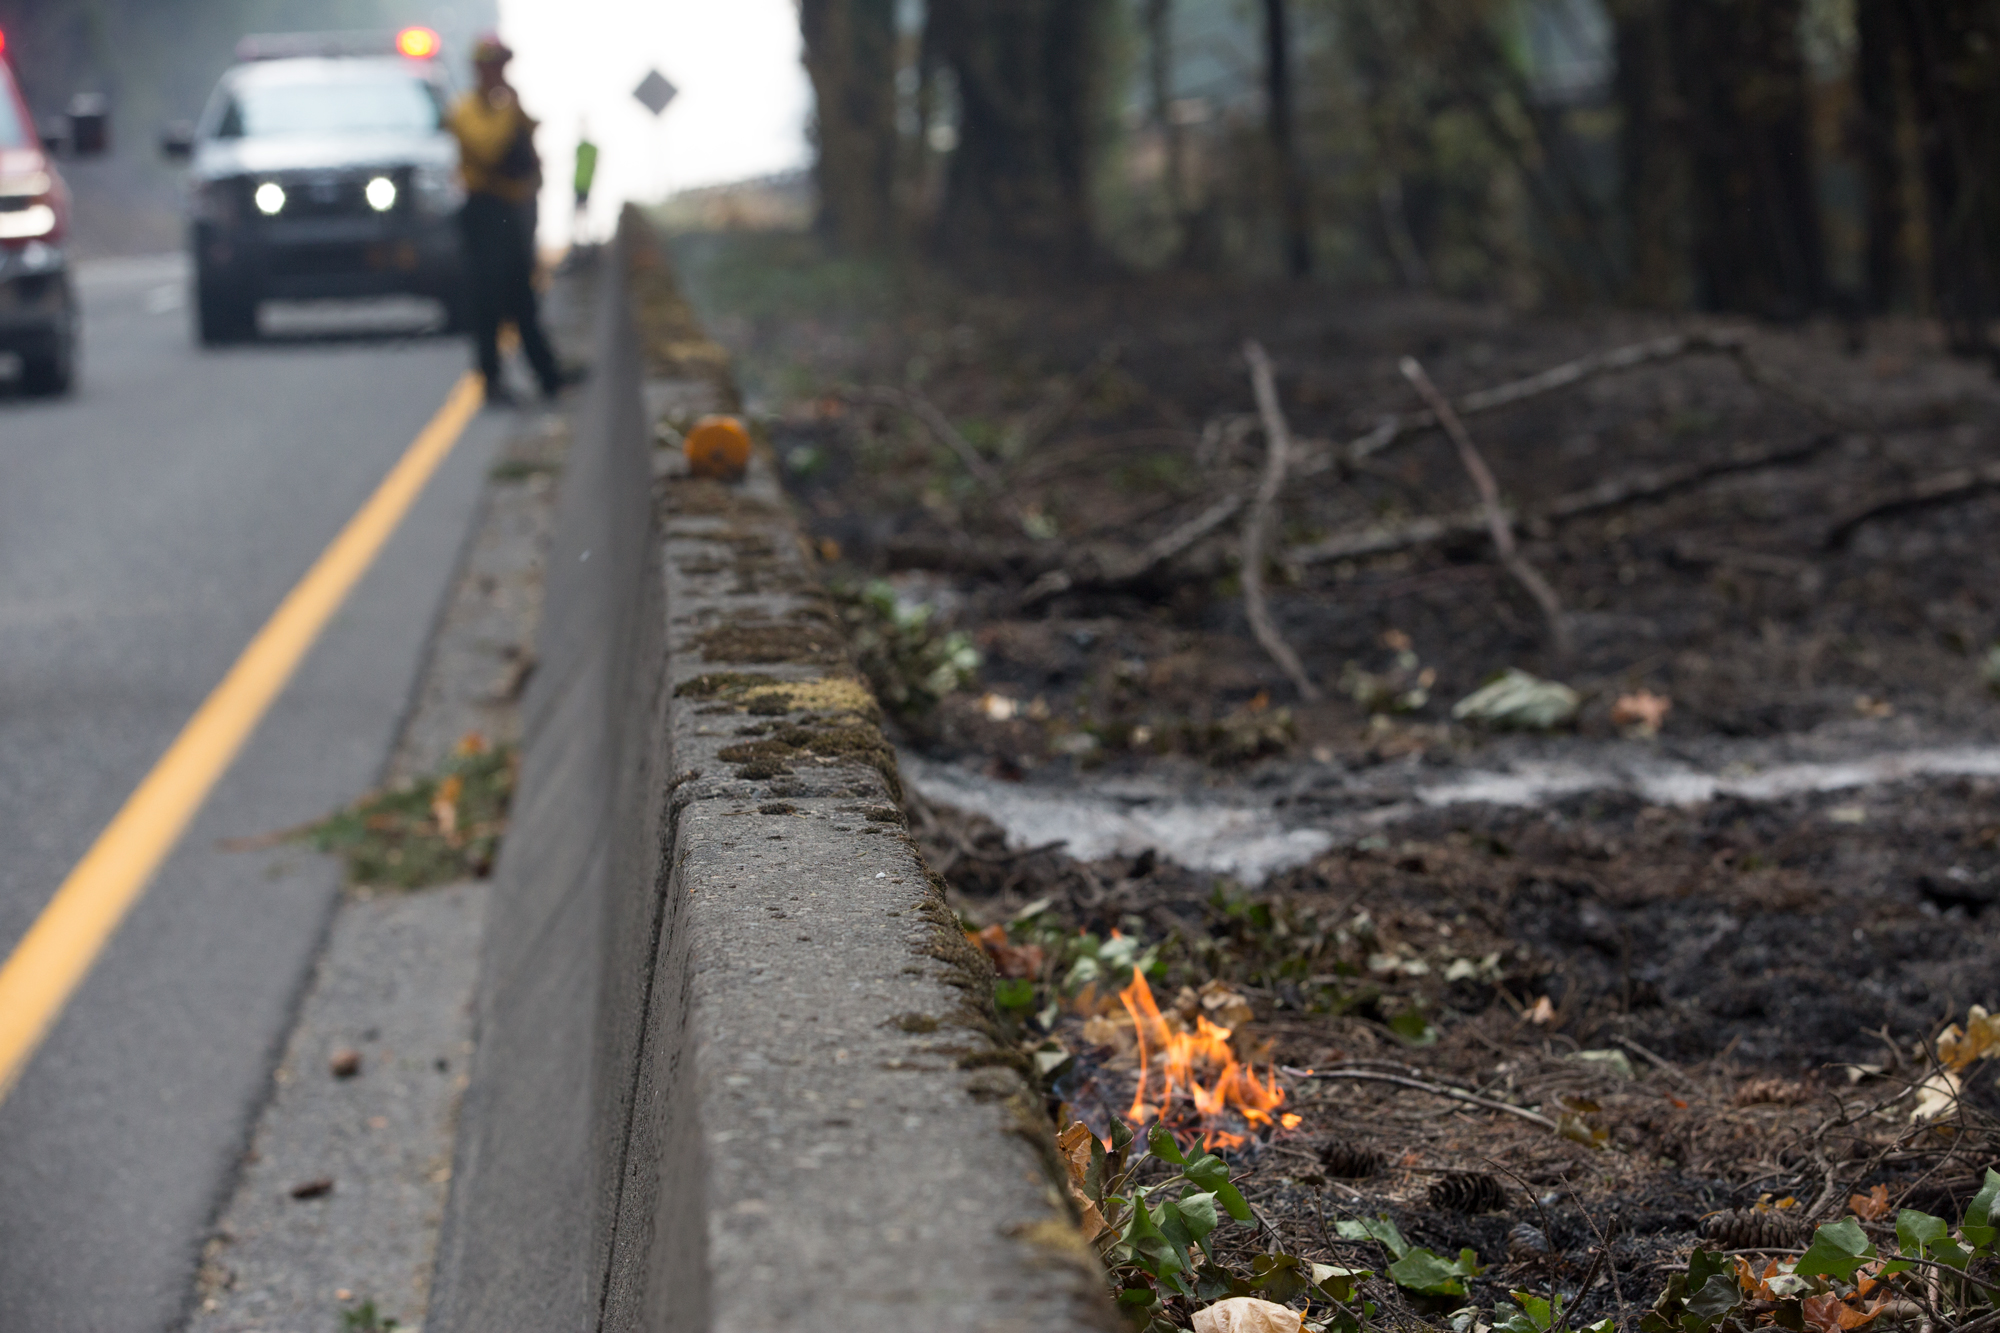 Photo of roadside during Eagle Creek Fire of 2017. Image shows smoke and forest ranger directing traffic.